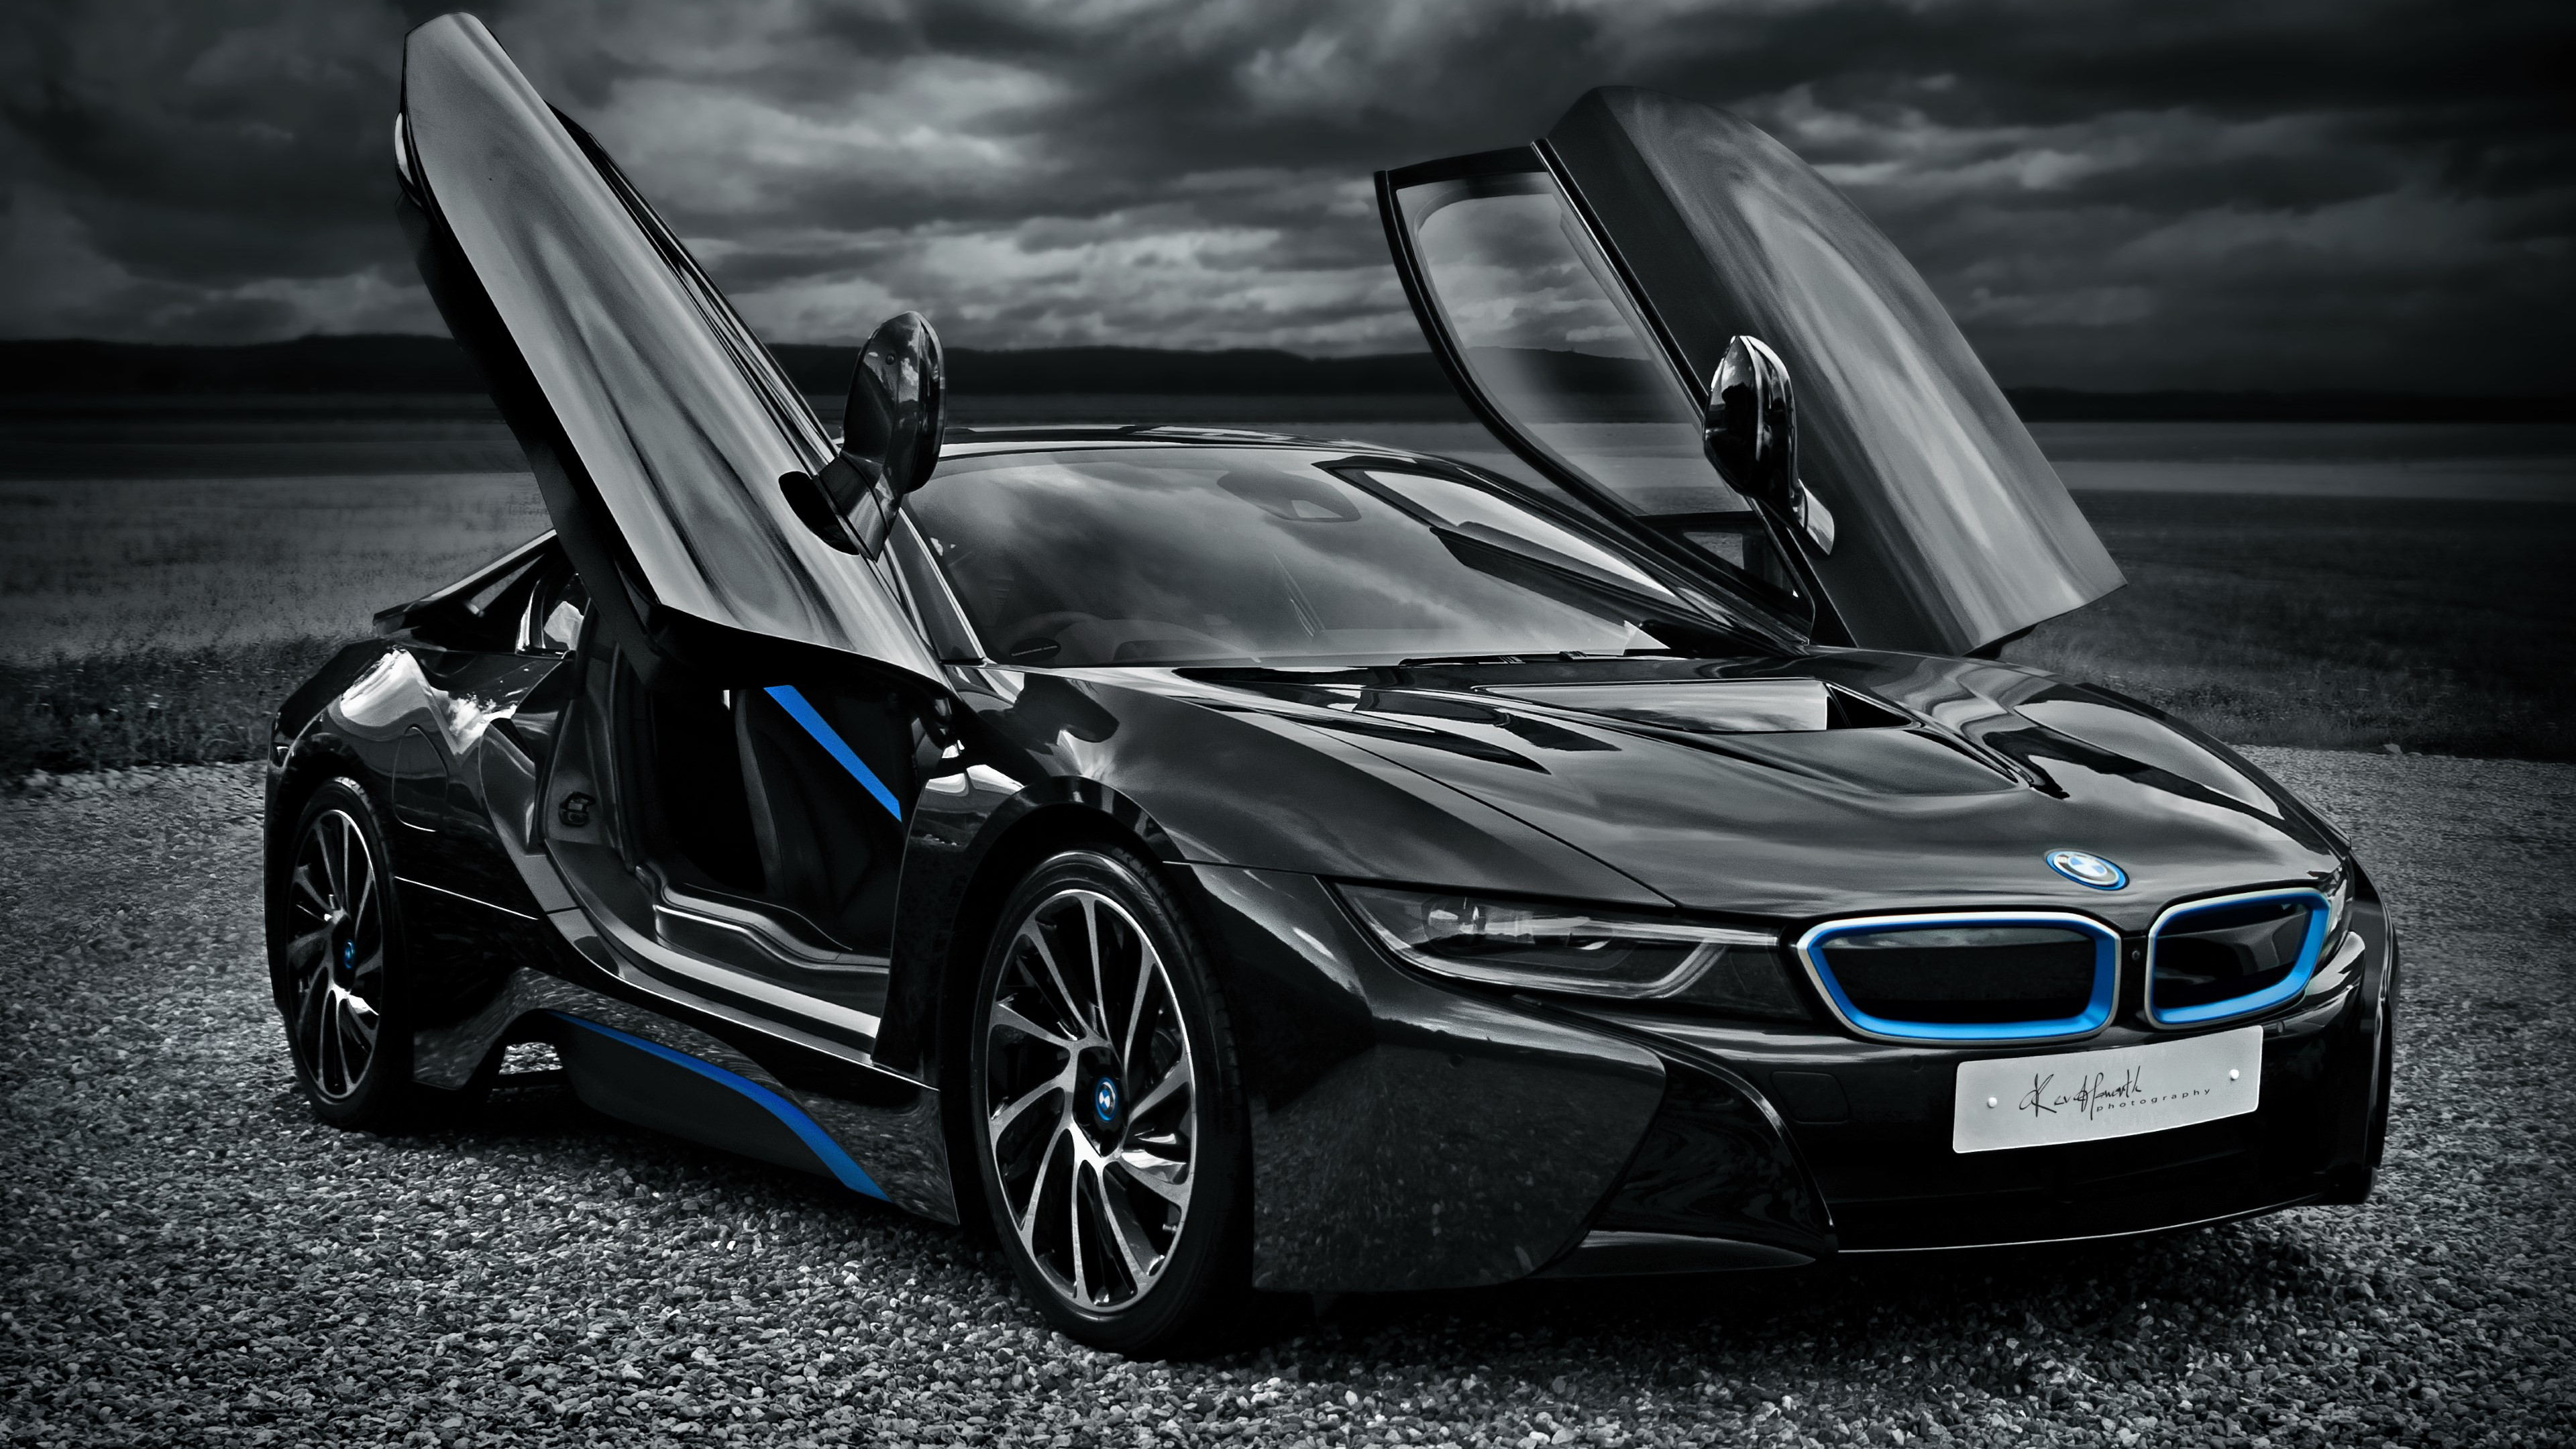 BMW i8 hybrid car wallpaper 3840x2160